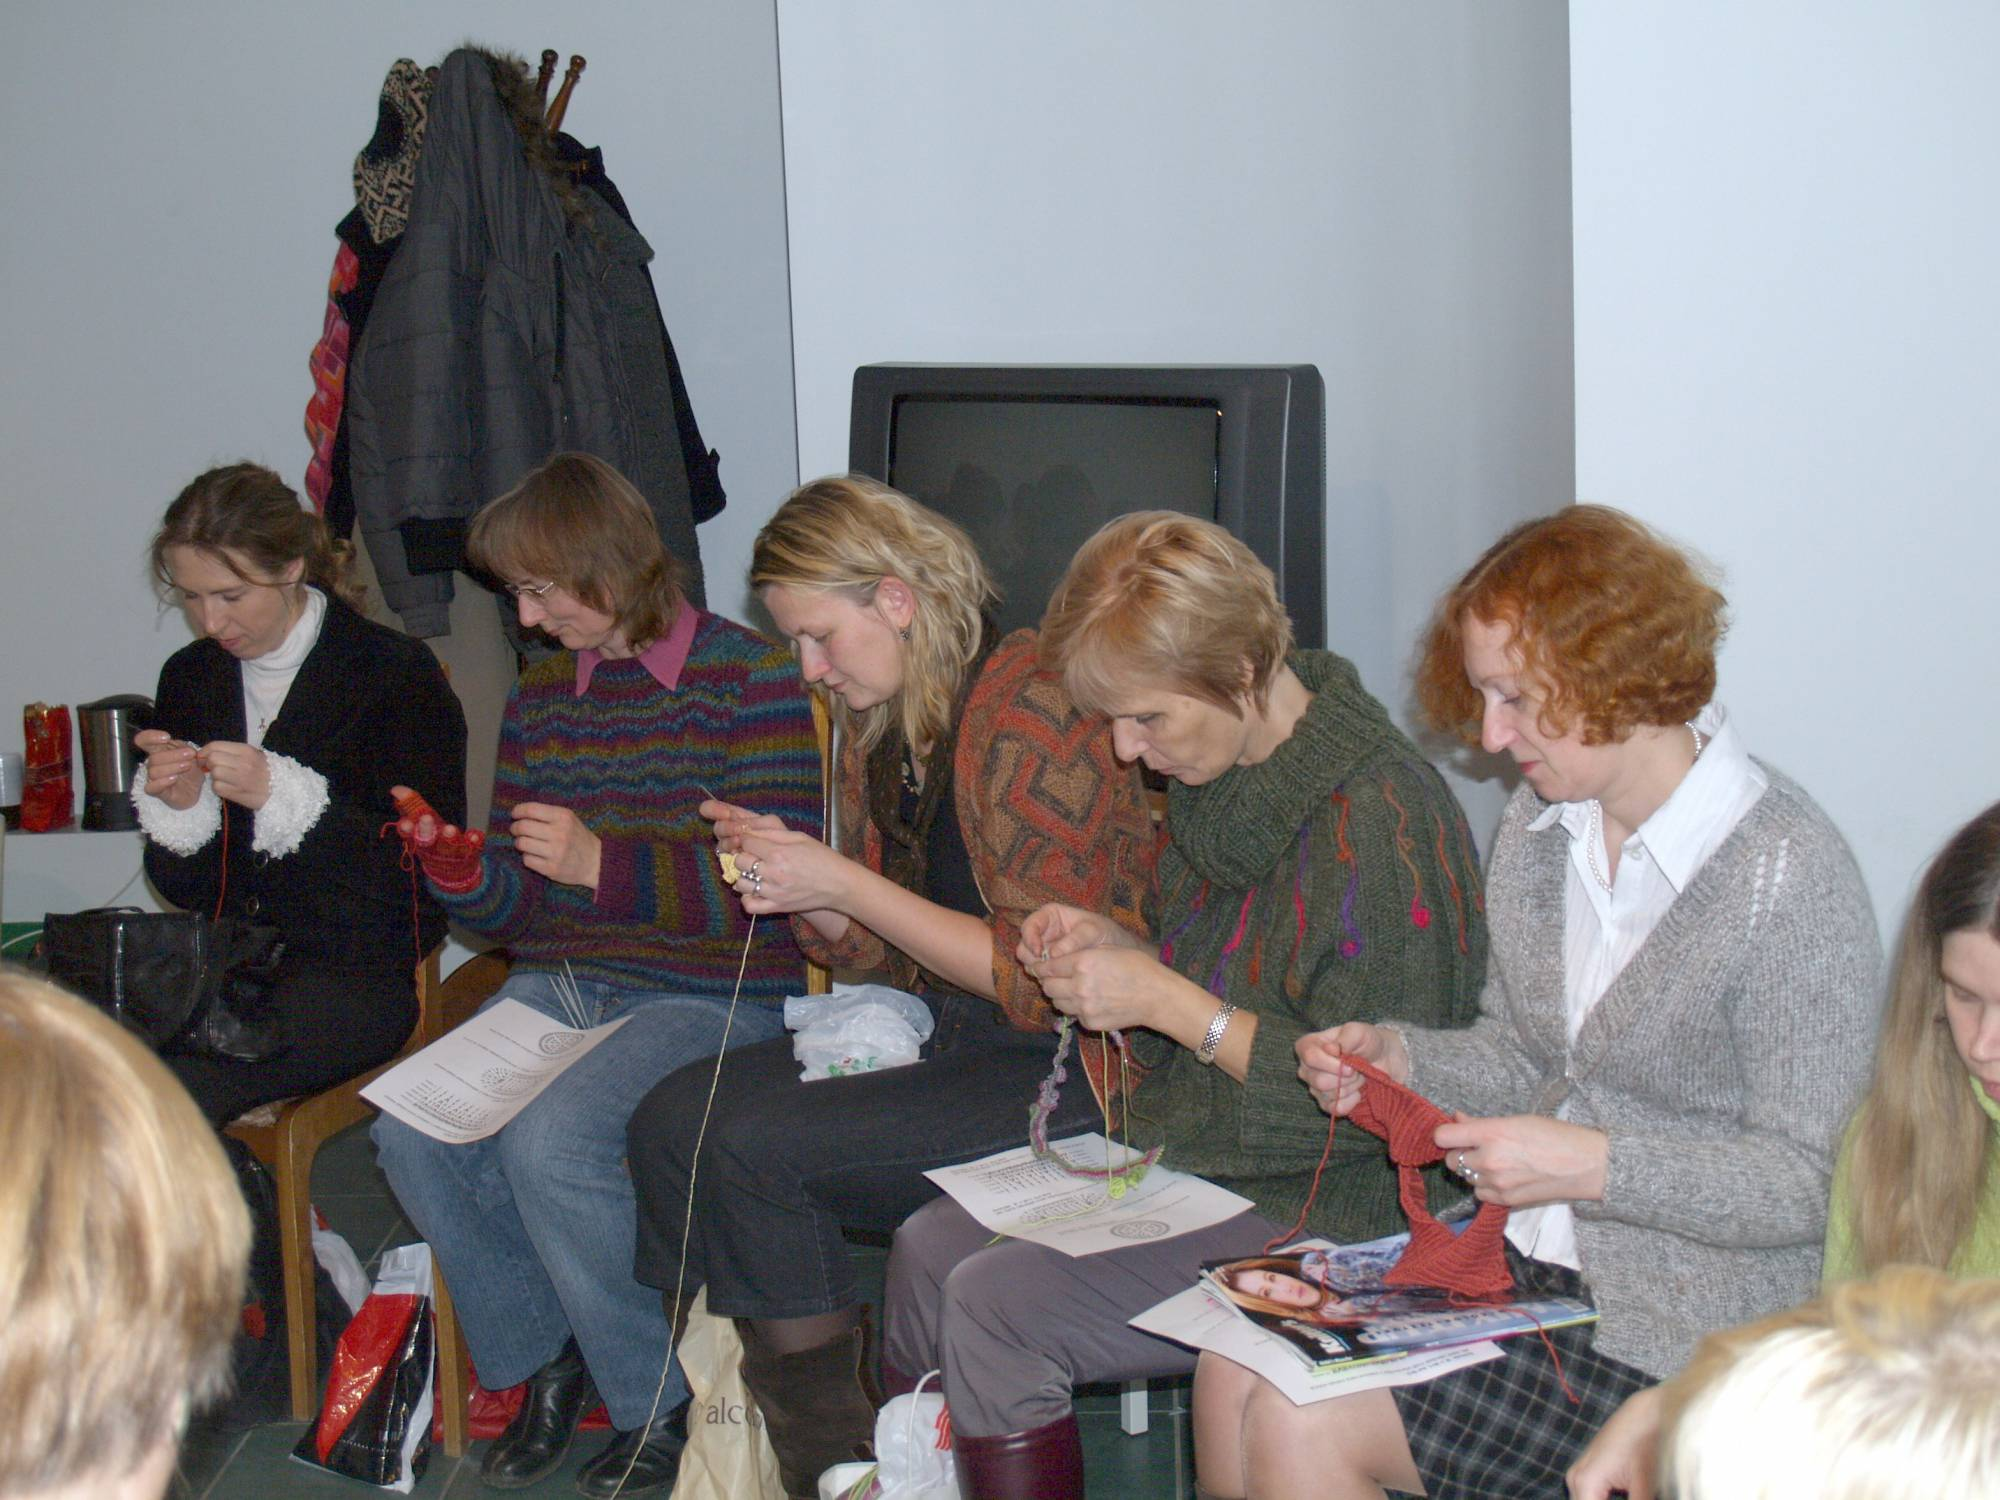 A group of women crocheting